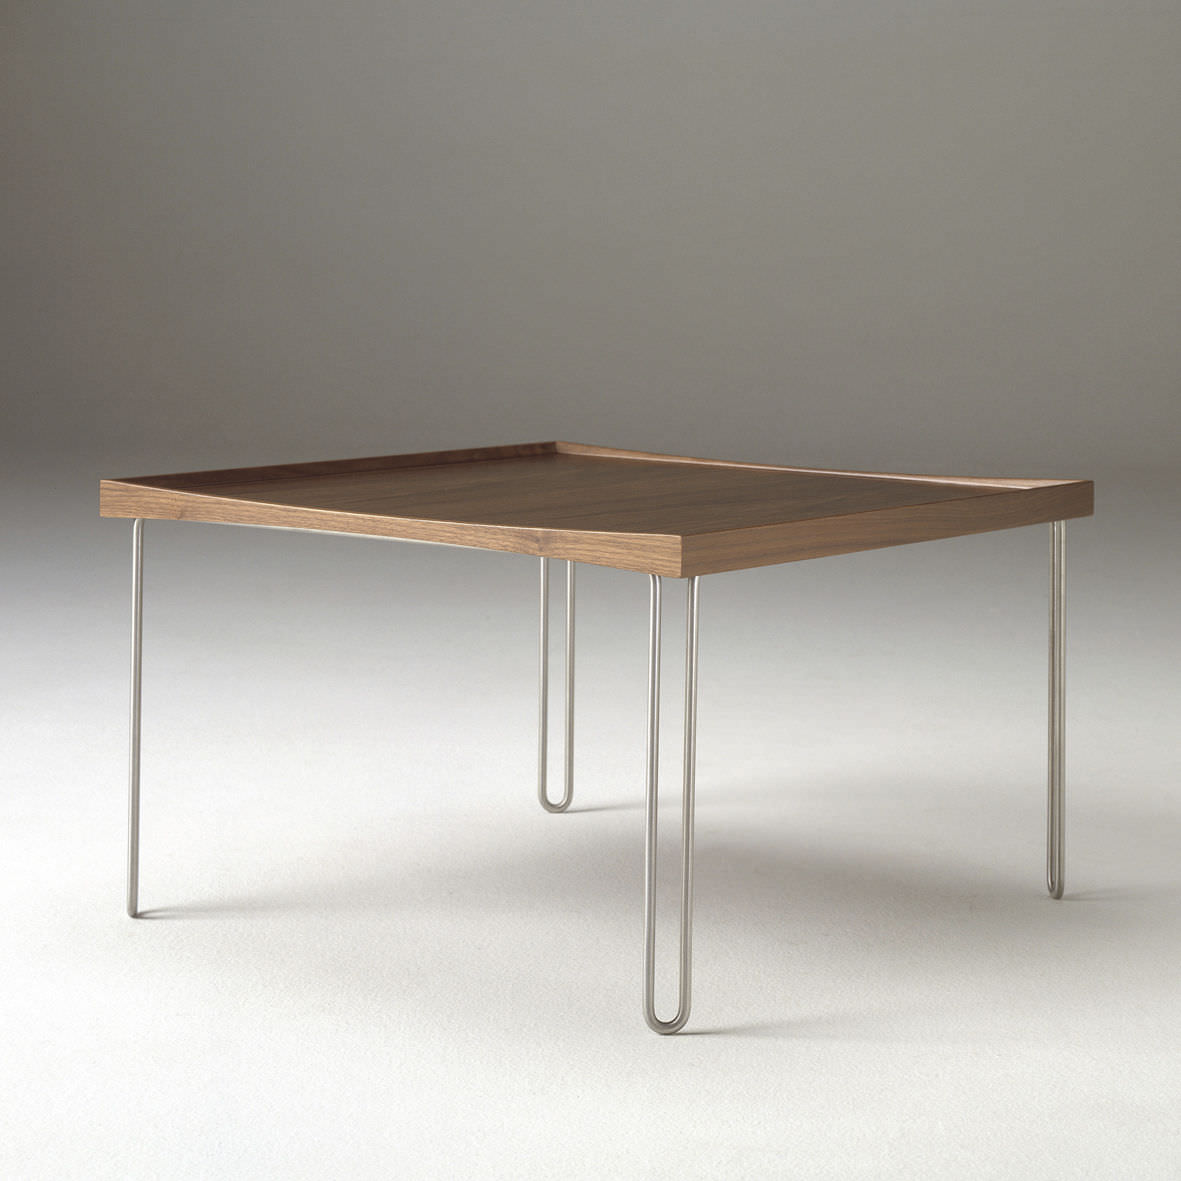 Scandinavian Design Coffee Table Solid Wood Laminate Brushed Stainless Steel